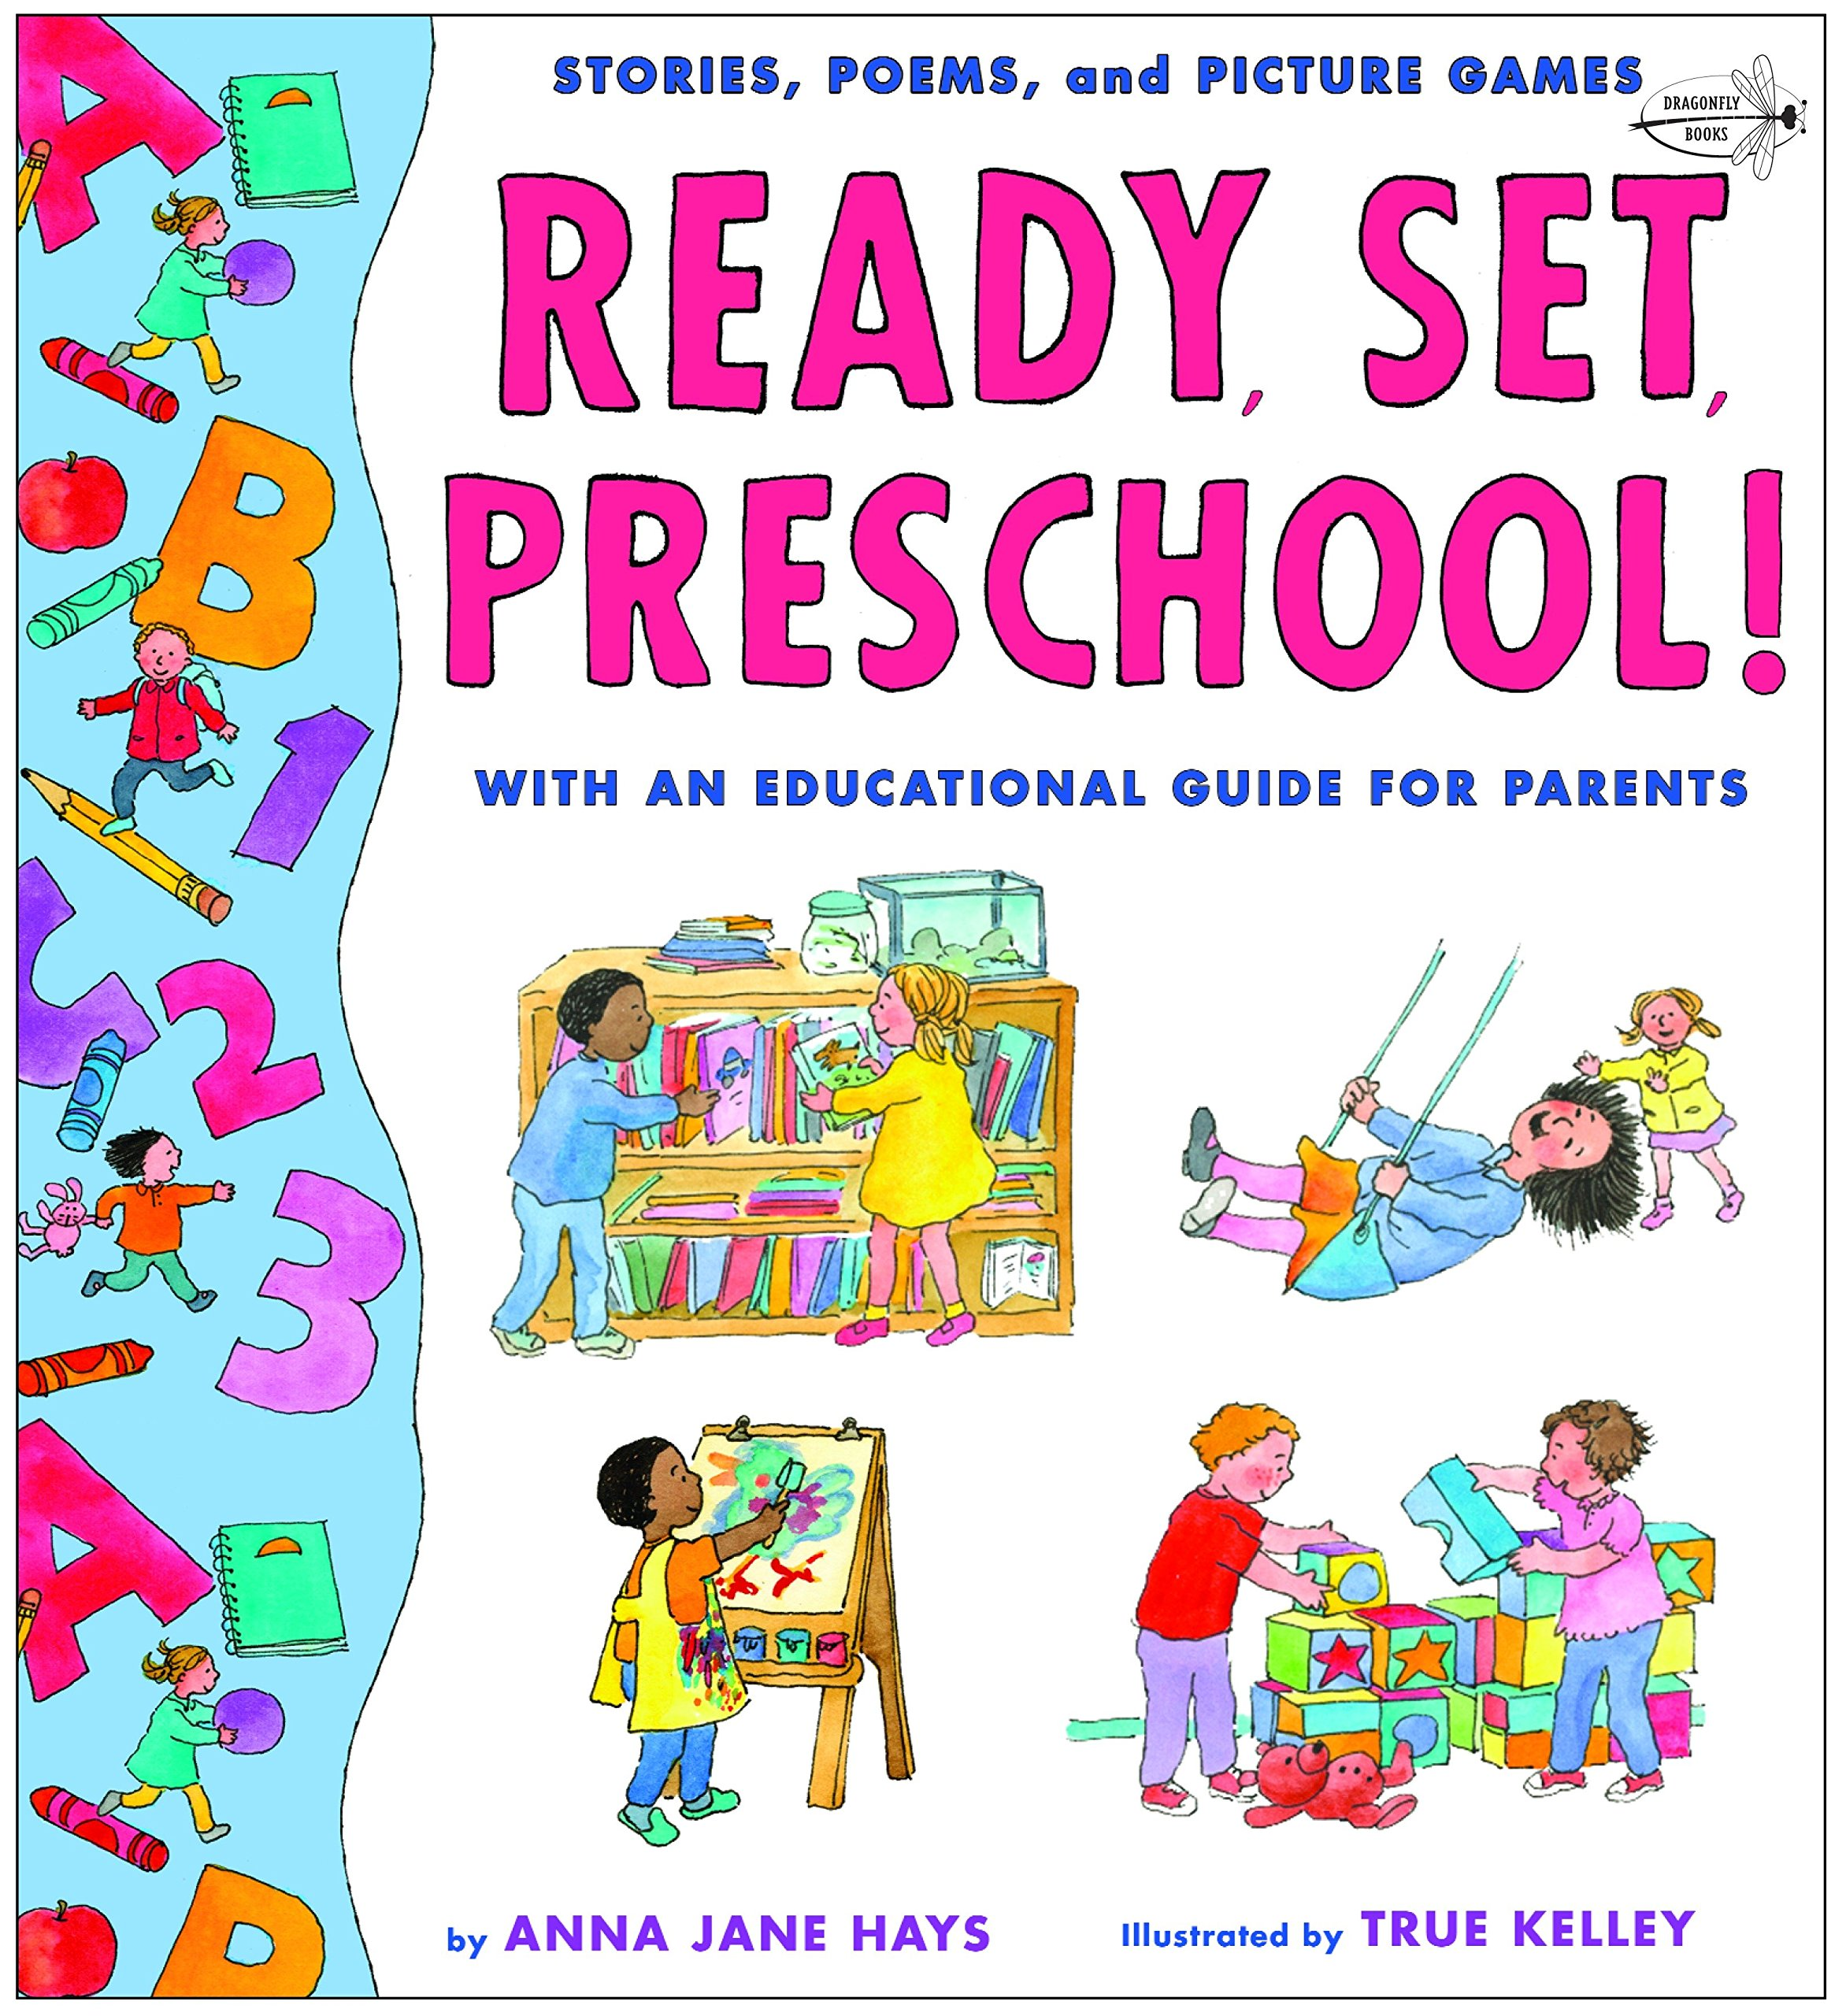 Download Ready, Set, Preschool!: Stories, Poems and Picture Games with an Educational Guide for Parents ebook